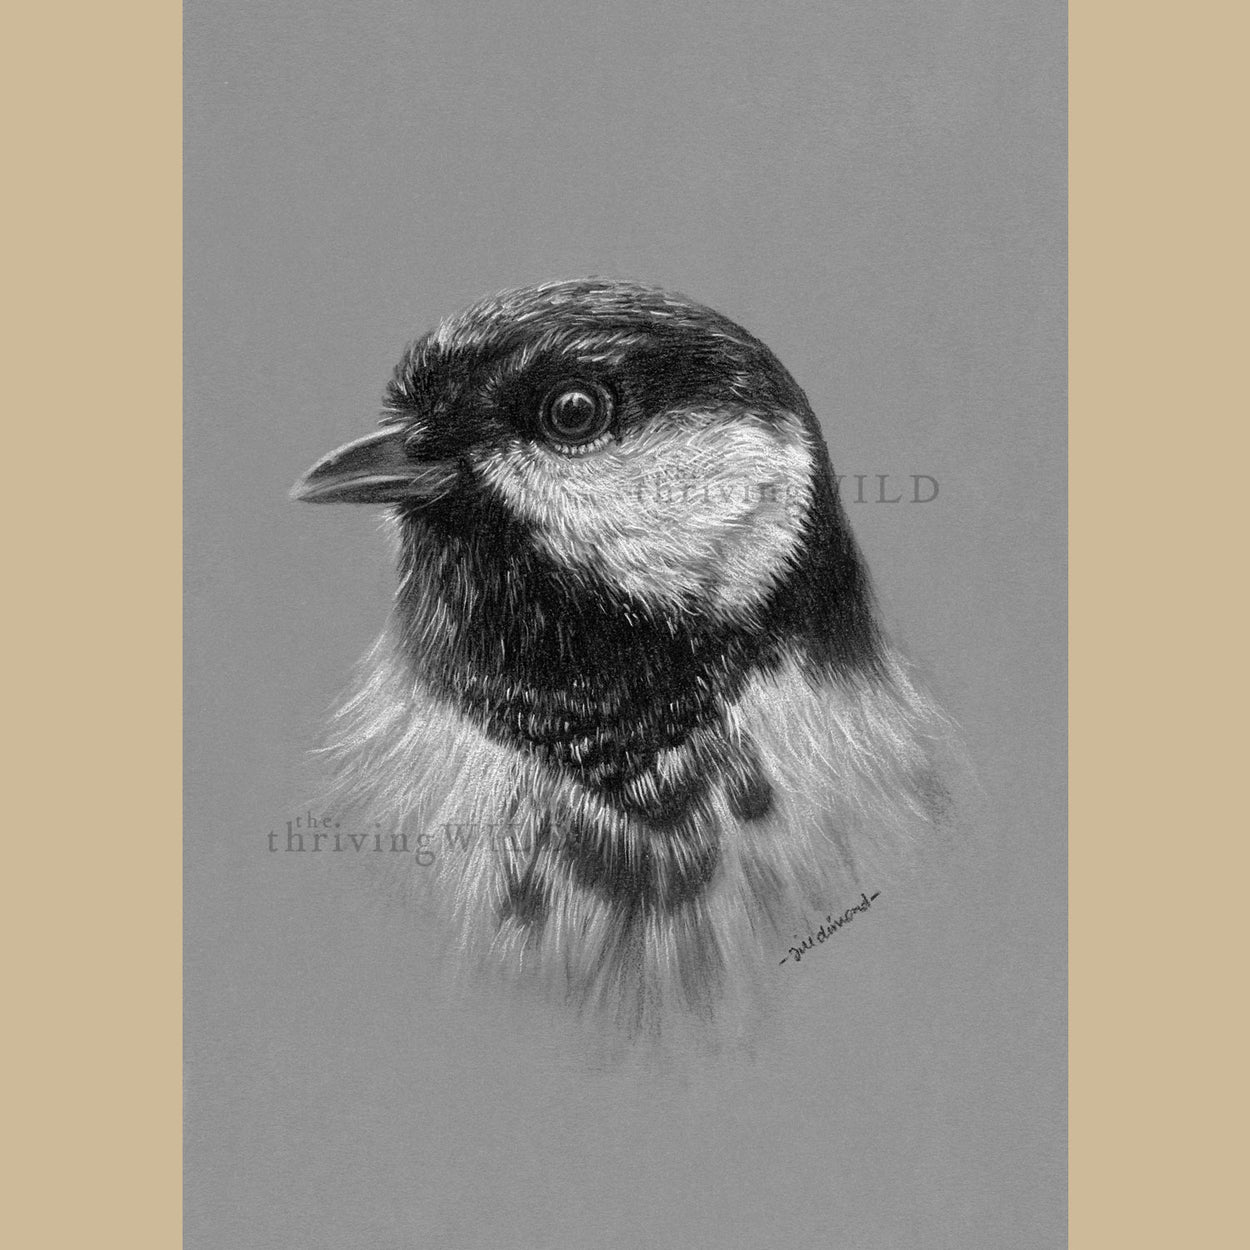 Great Tit Charcoal Drawing Garden Bird - The Thriving Wild - Jill Dimond